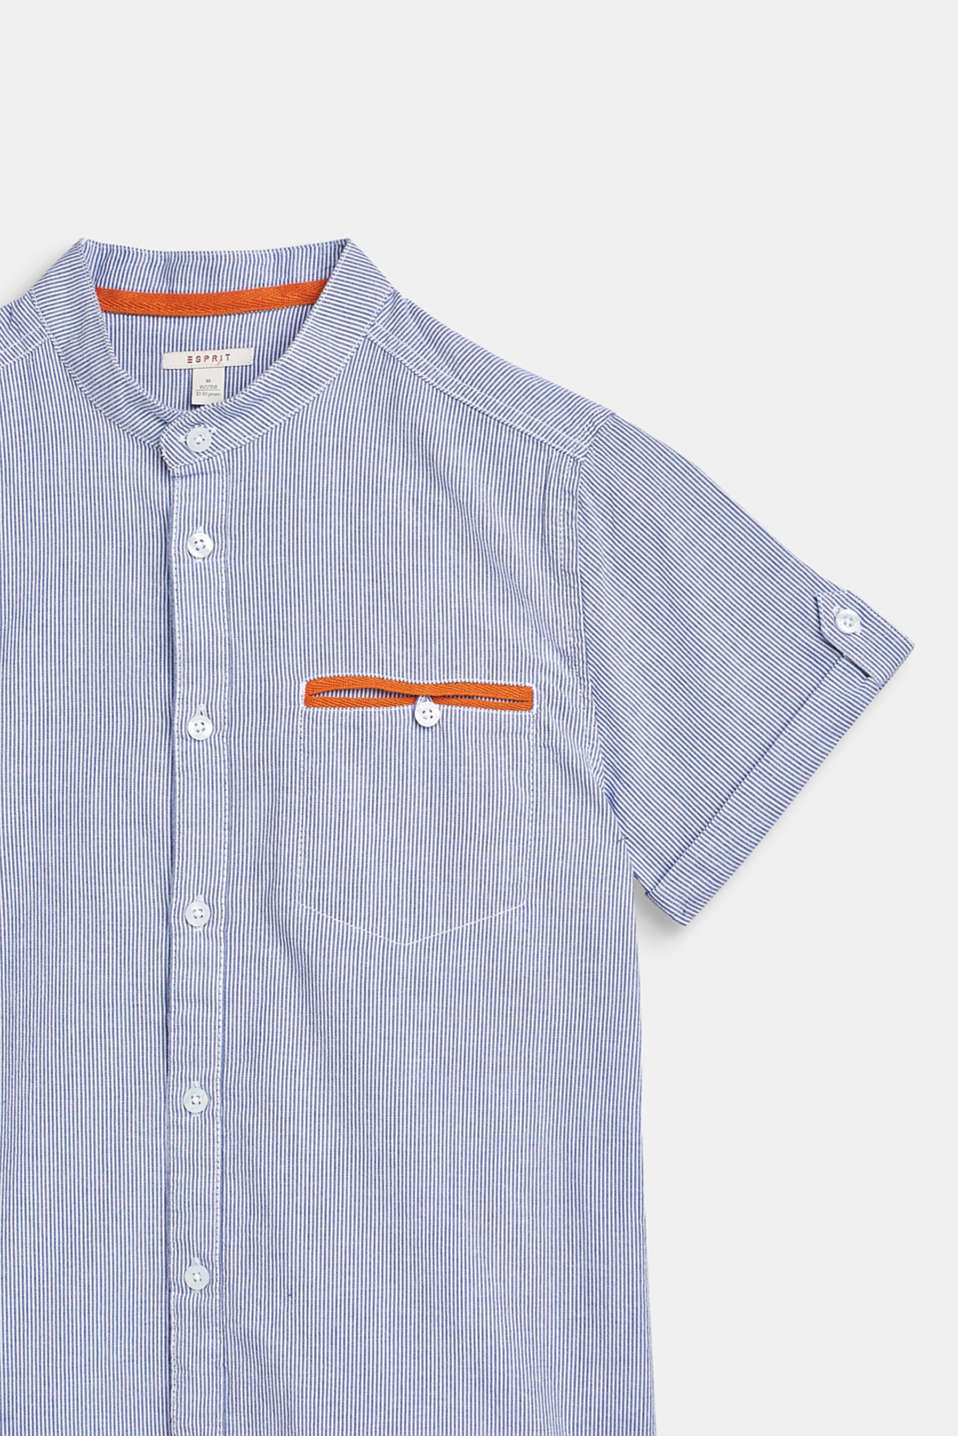 Striped short sleeve shirt, 100% cotton, LCWHITE, detail image number 2